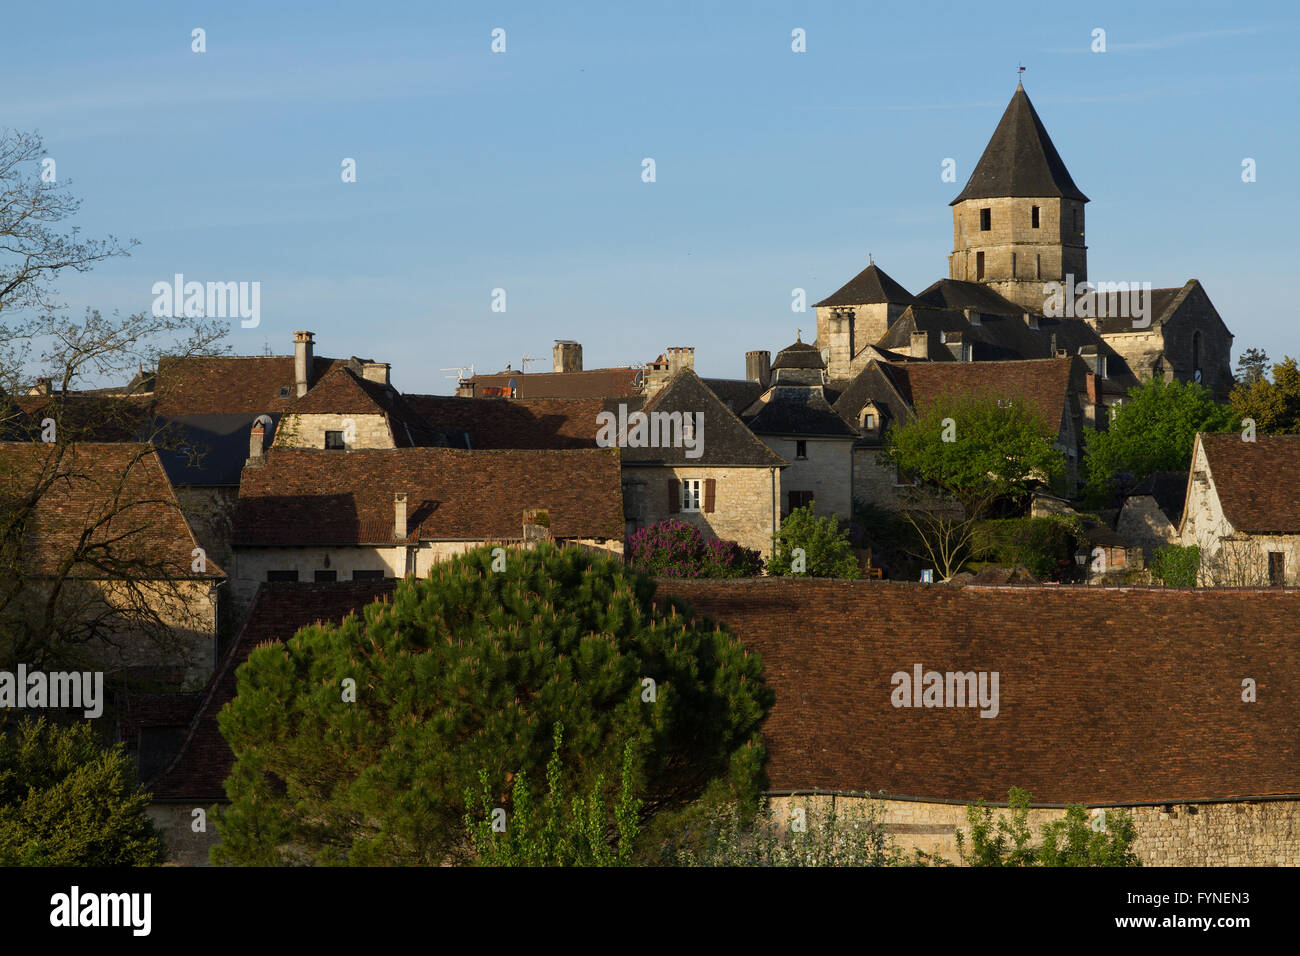 The charming village of Saint Robert Correze France - Stock Image